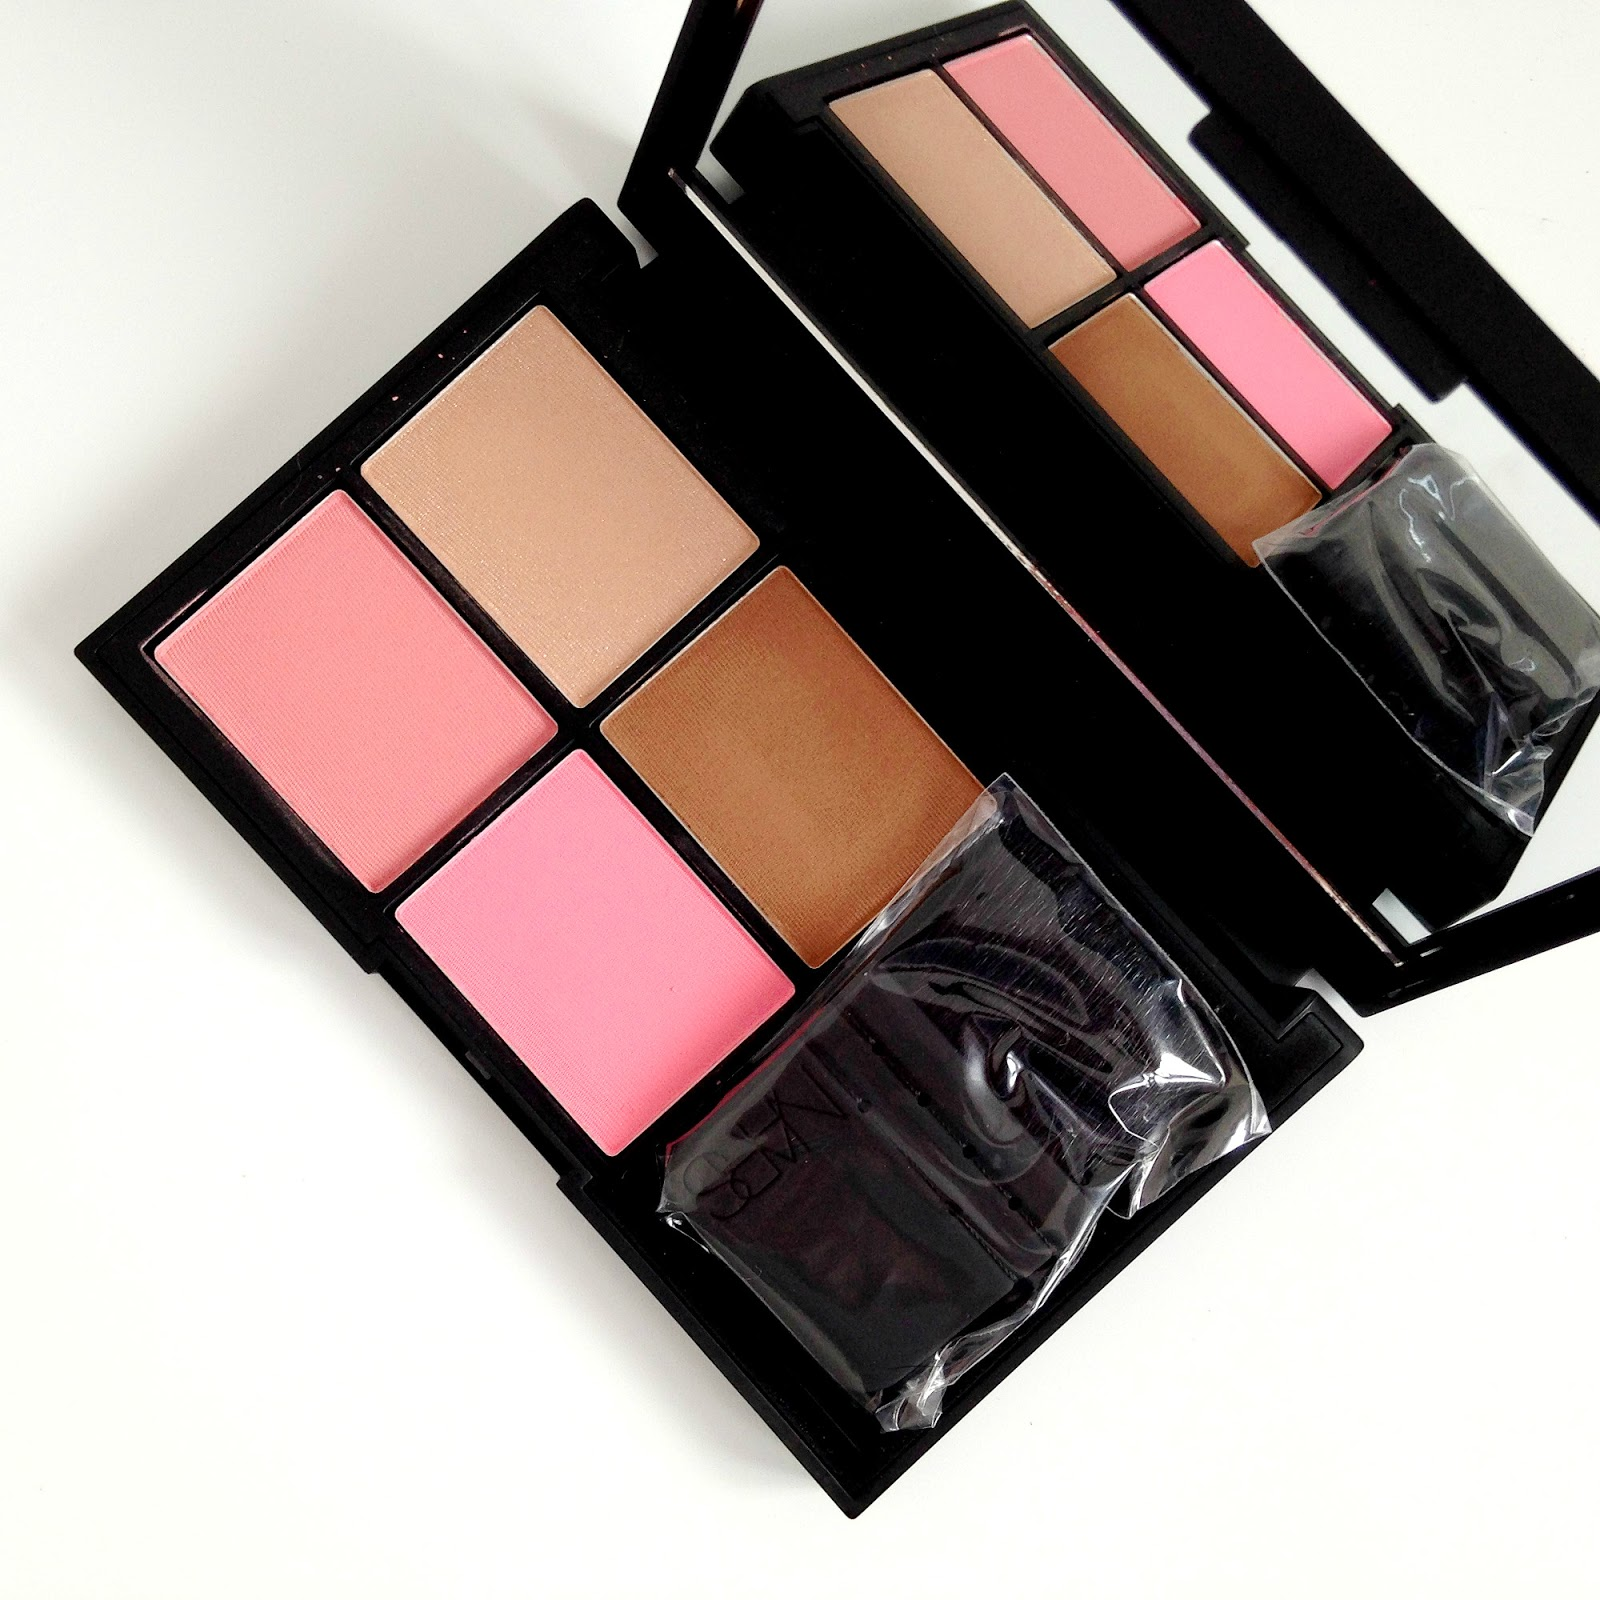 NARS Summer Gifting Sets 2015